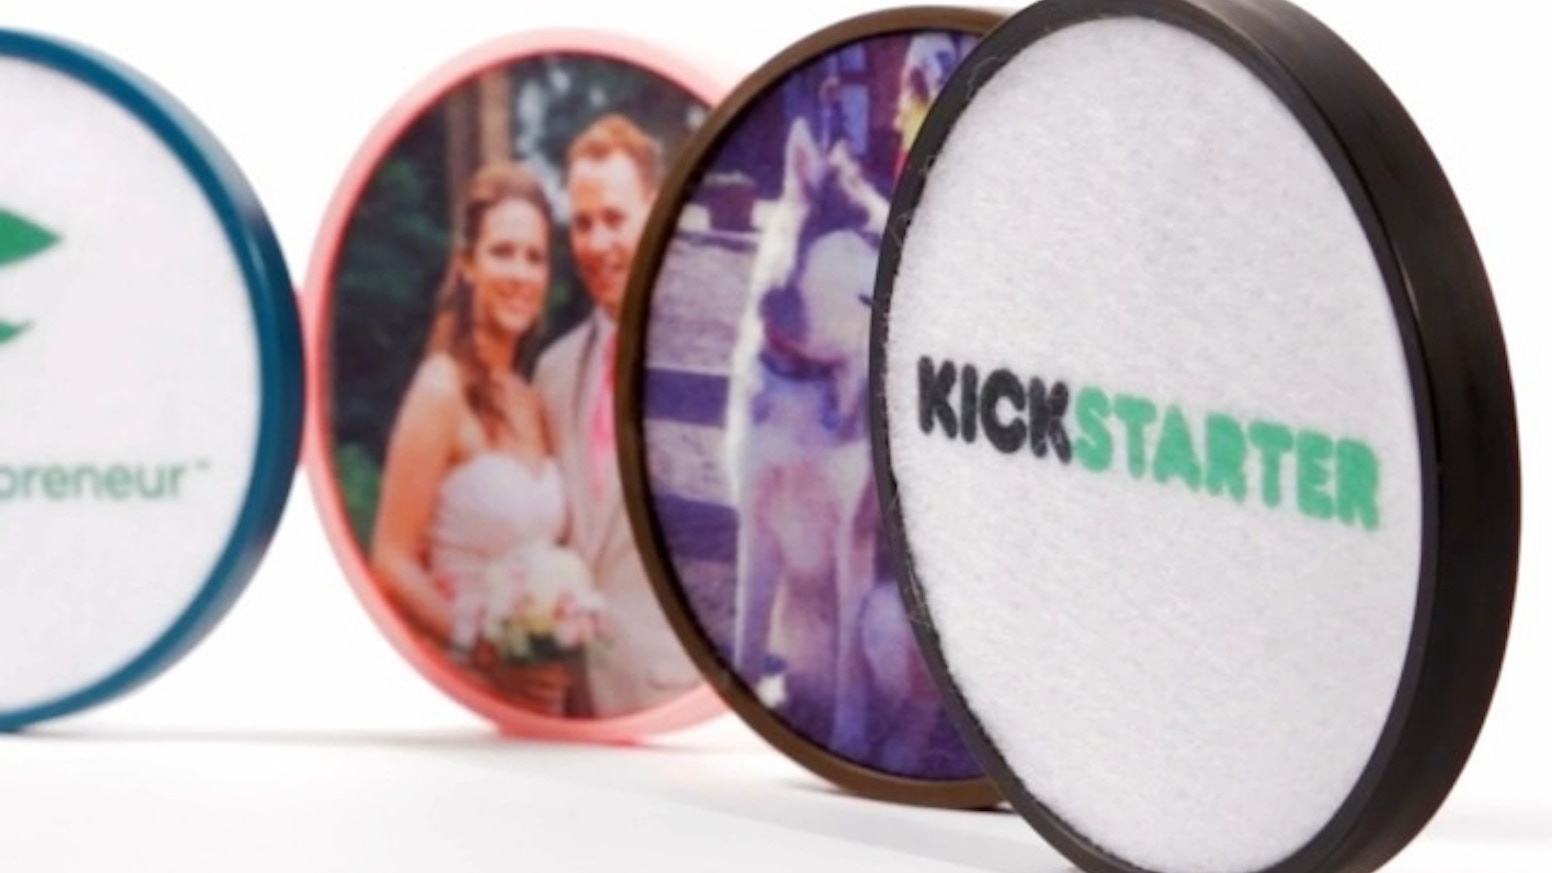 Custom drink coasters for businesses, sports teams, family rooms, and more!